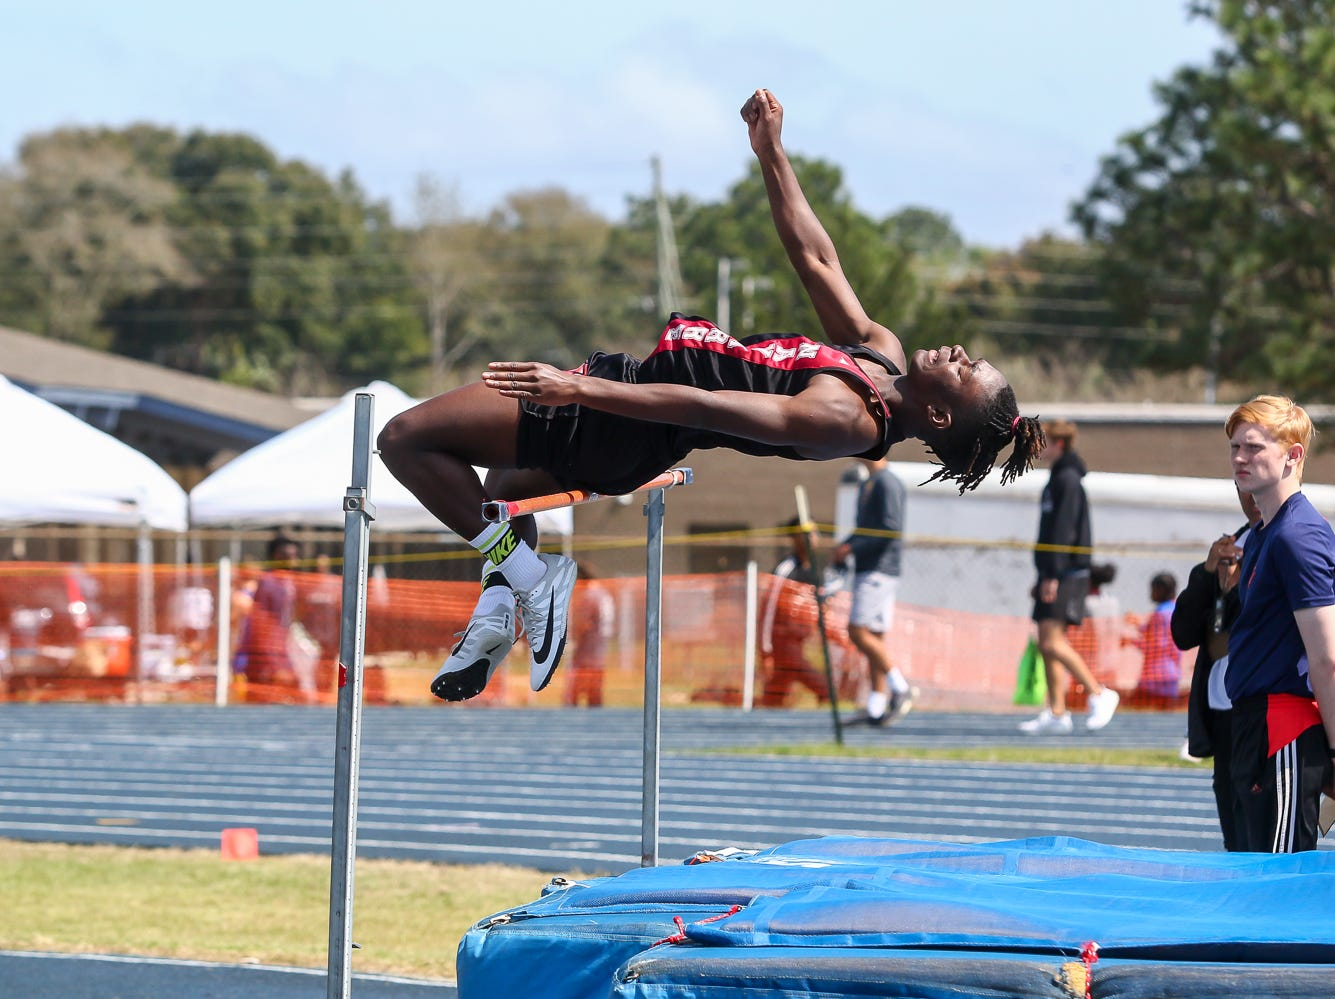 Athletes compete in the high jump on Saturday, March 9, 2019, during the Aggie Invitational at Washington High School.